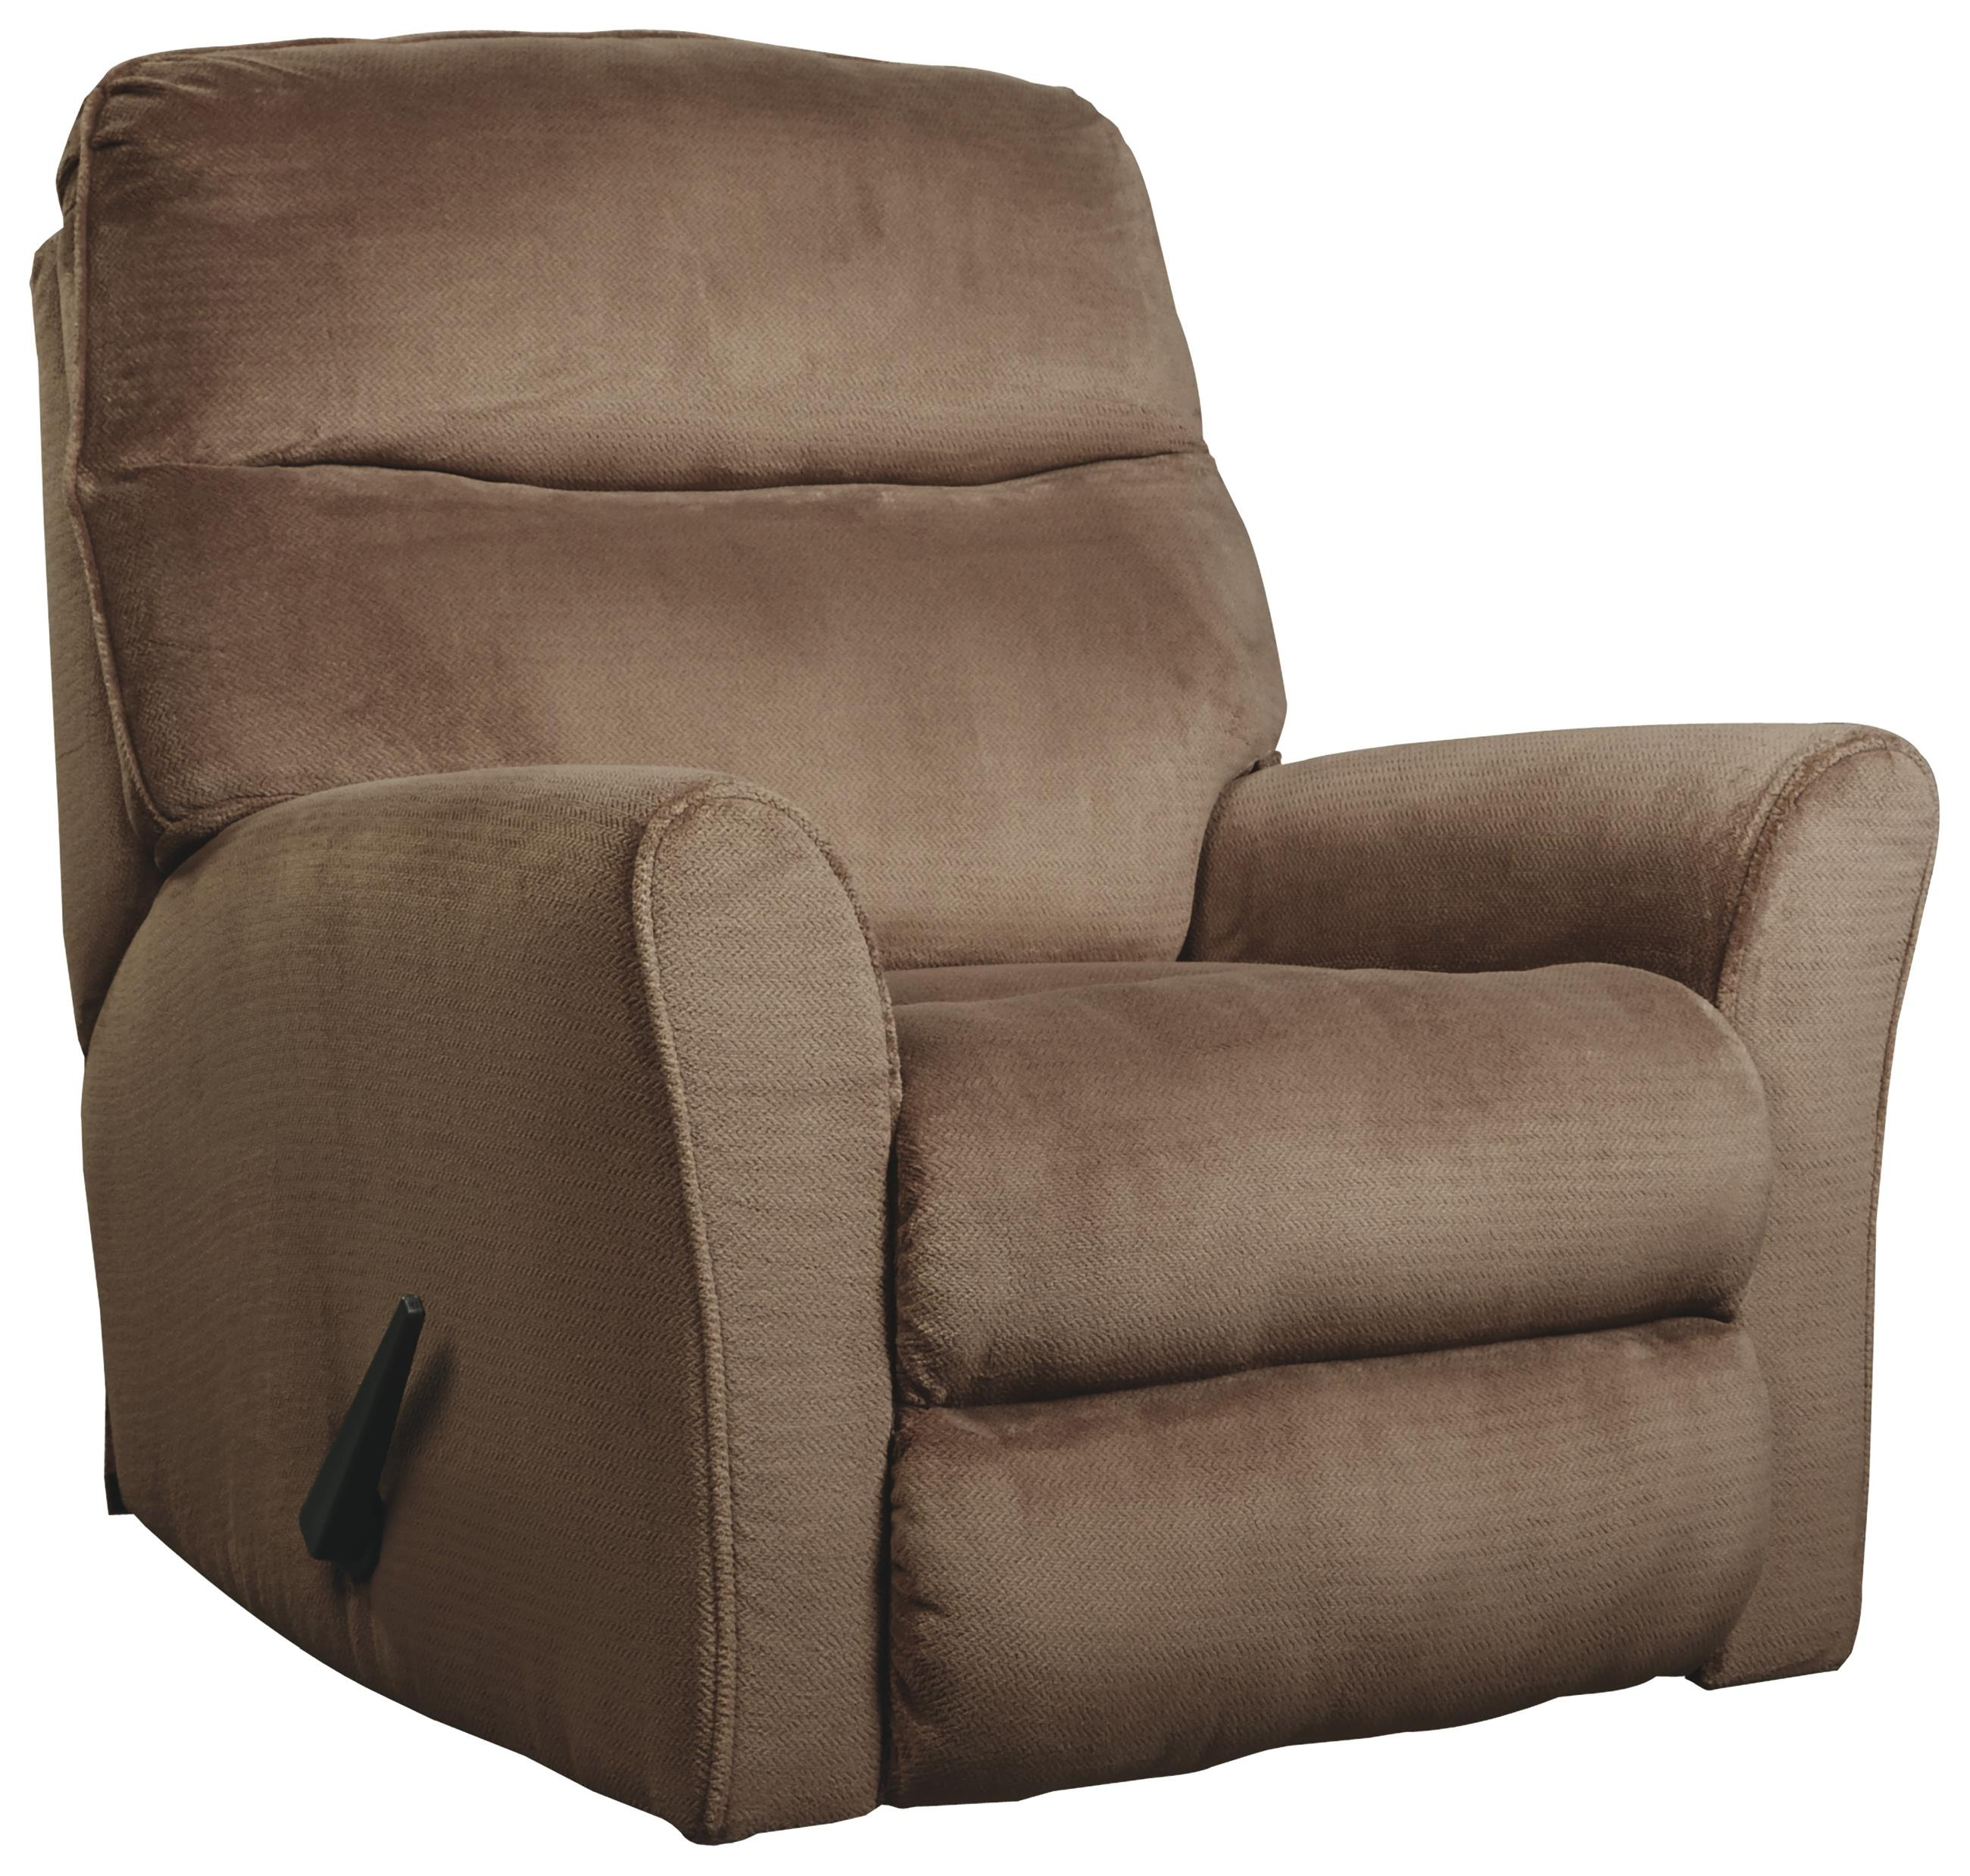 Signature Design by Ashley Cossette Rocker Recliner - Item Number: 6730325